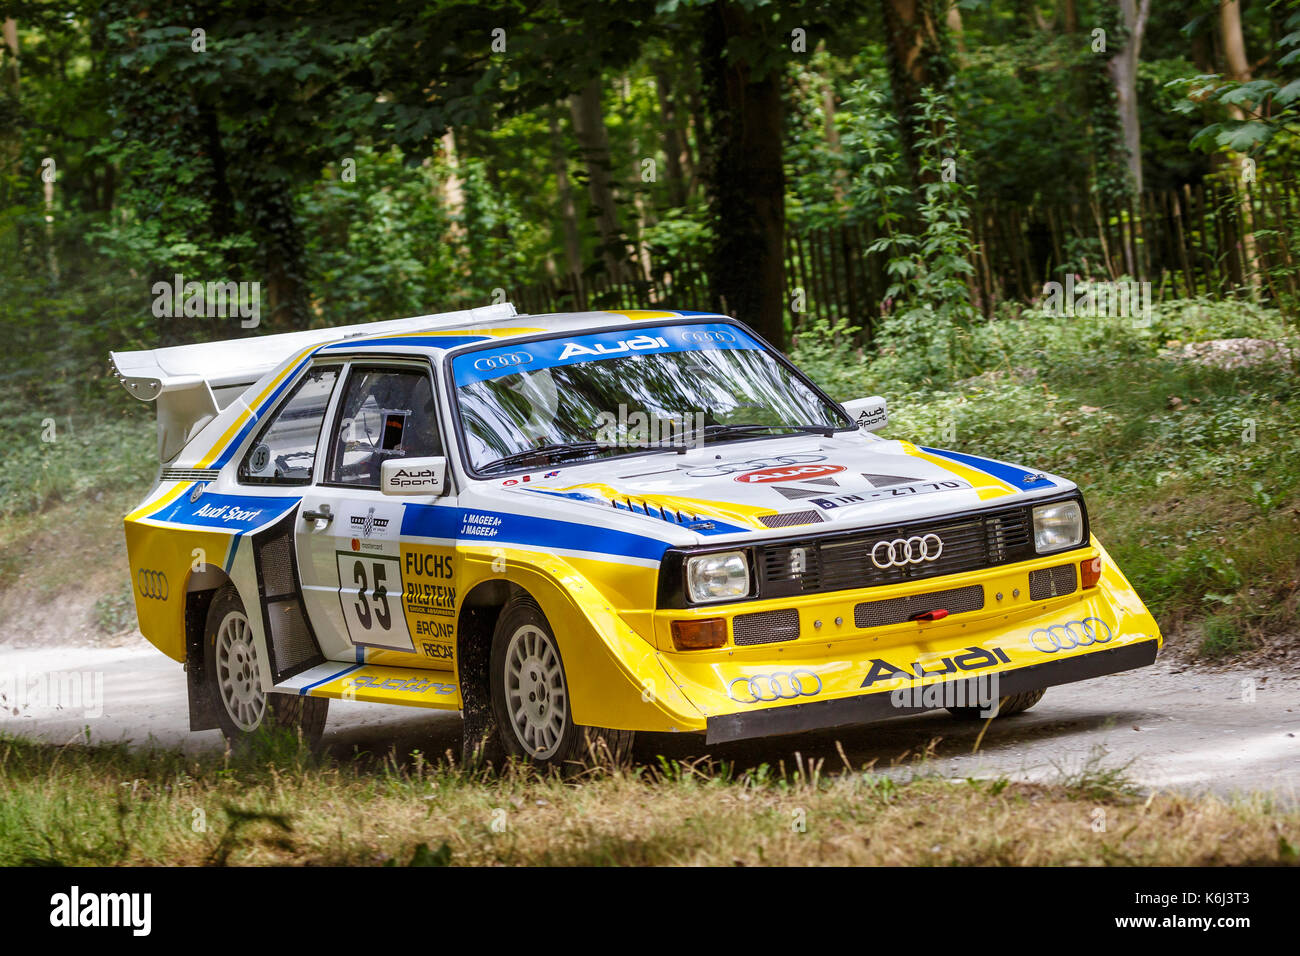 1986 Ausi Quattro S1 E2 on the forest rally stage with driver Janice Magee at the 2017 Goodwwod Festival of Speed, Sussex, UK. - Stock Image